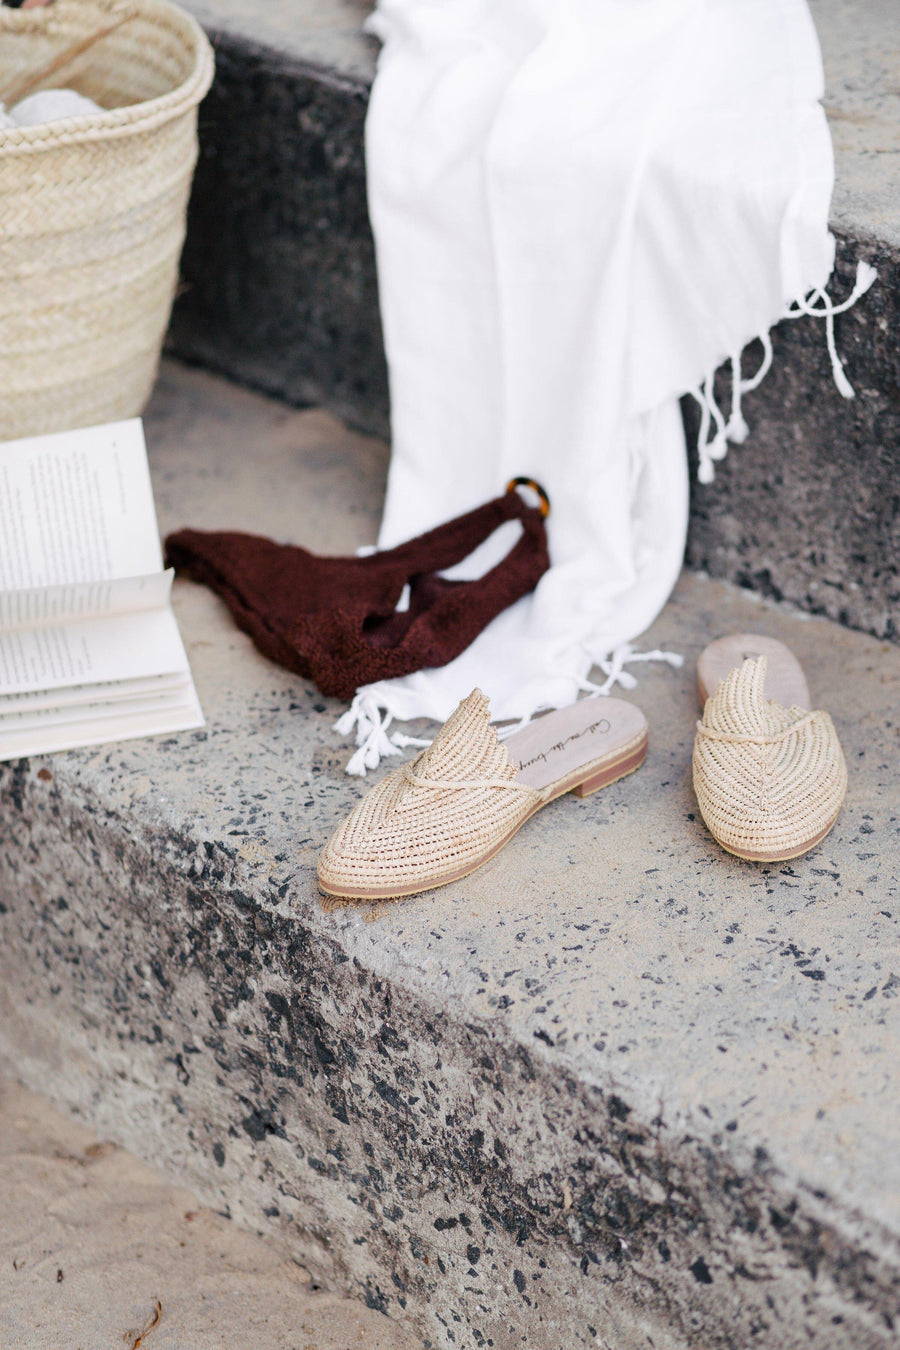 Call Me The Breeze Scout Raffia Loafers Natural // PREORDER